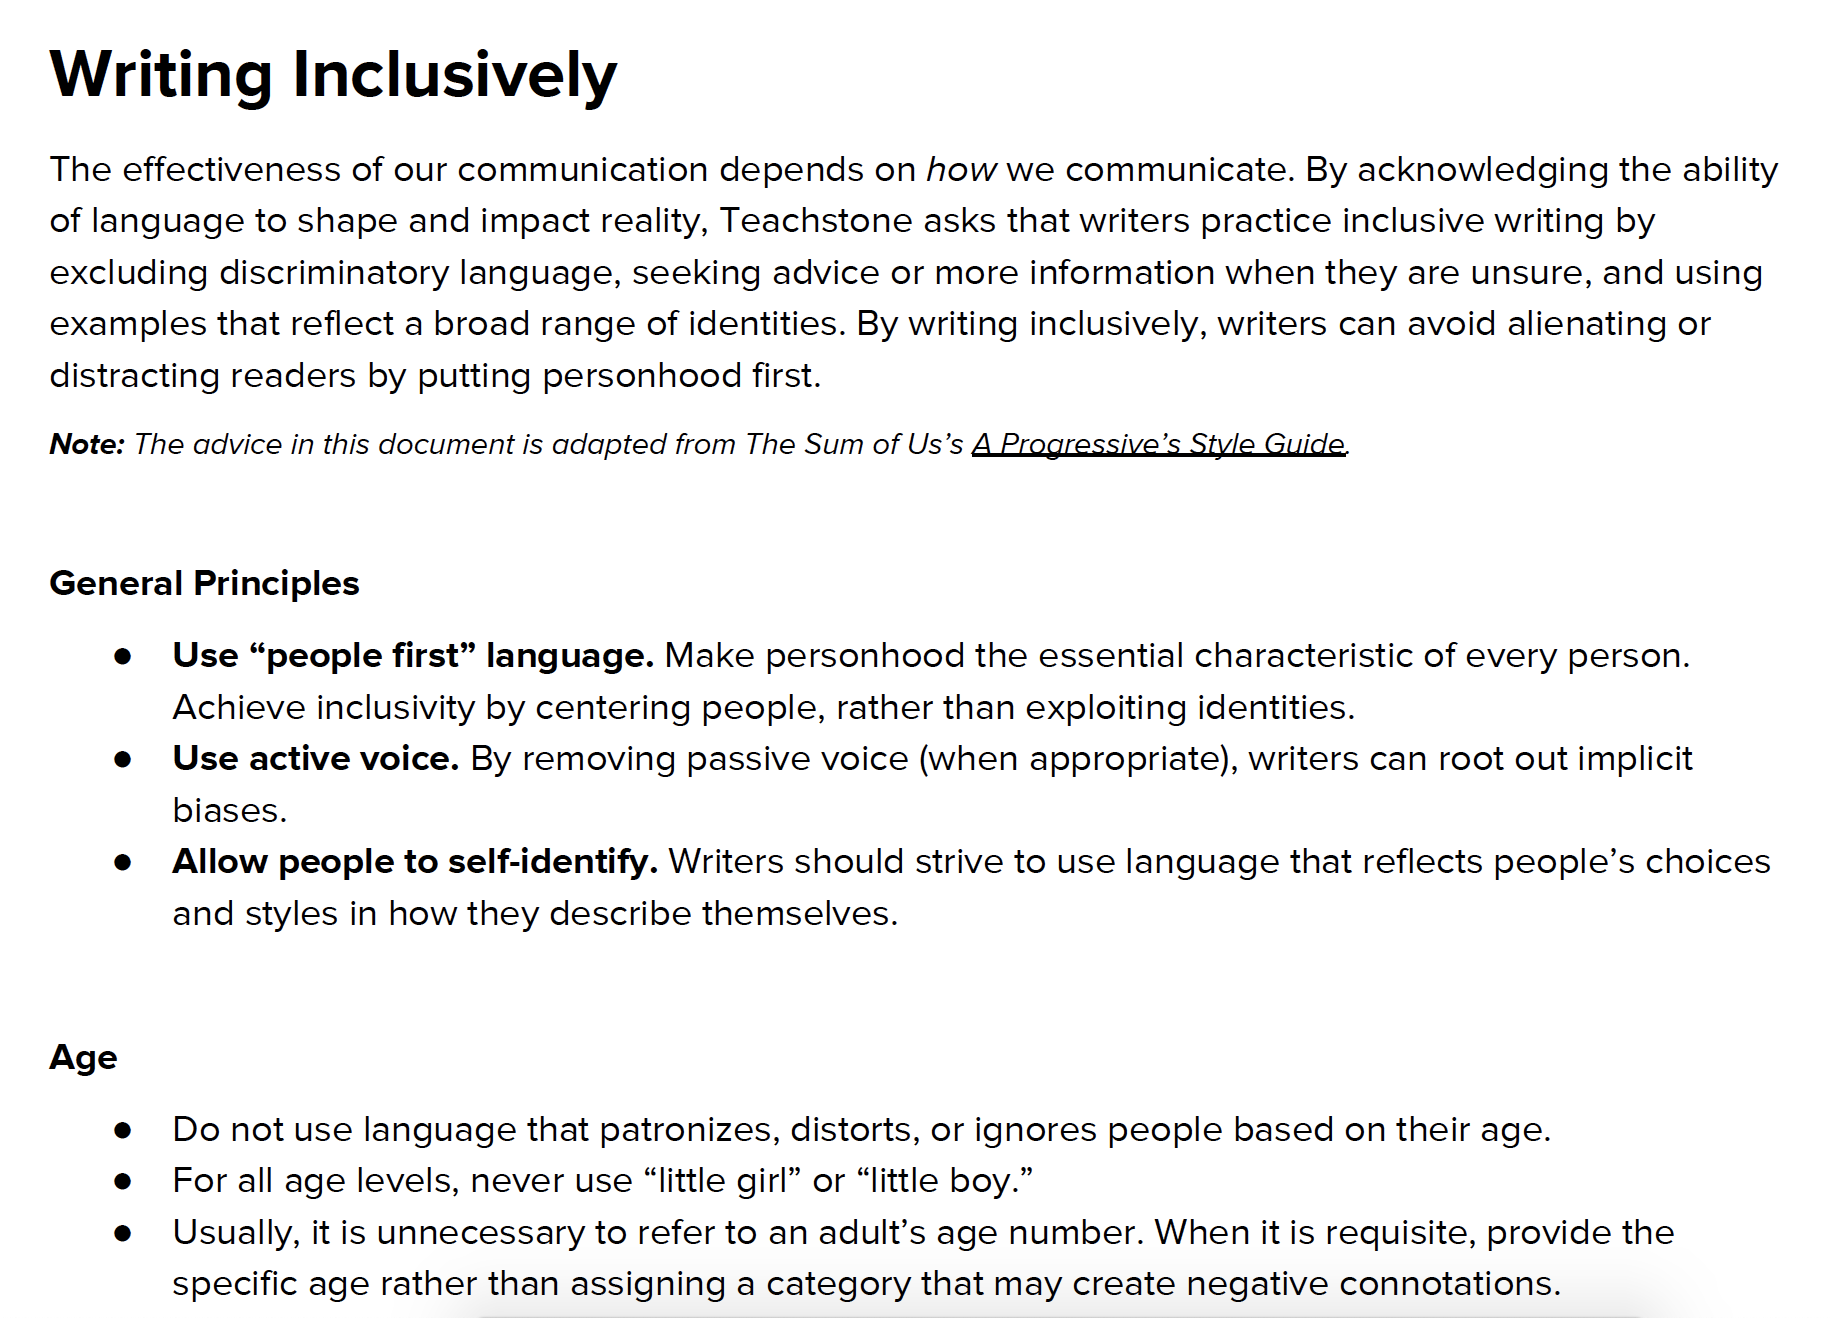 Guidelines for Writing Inclusively -